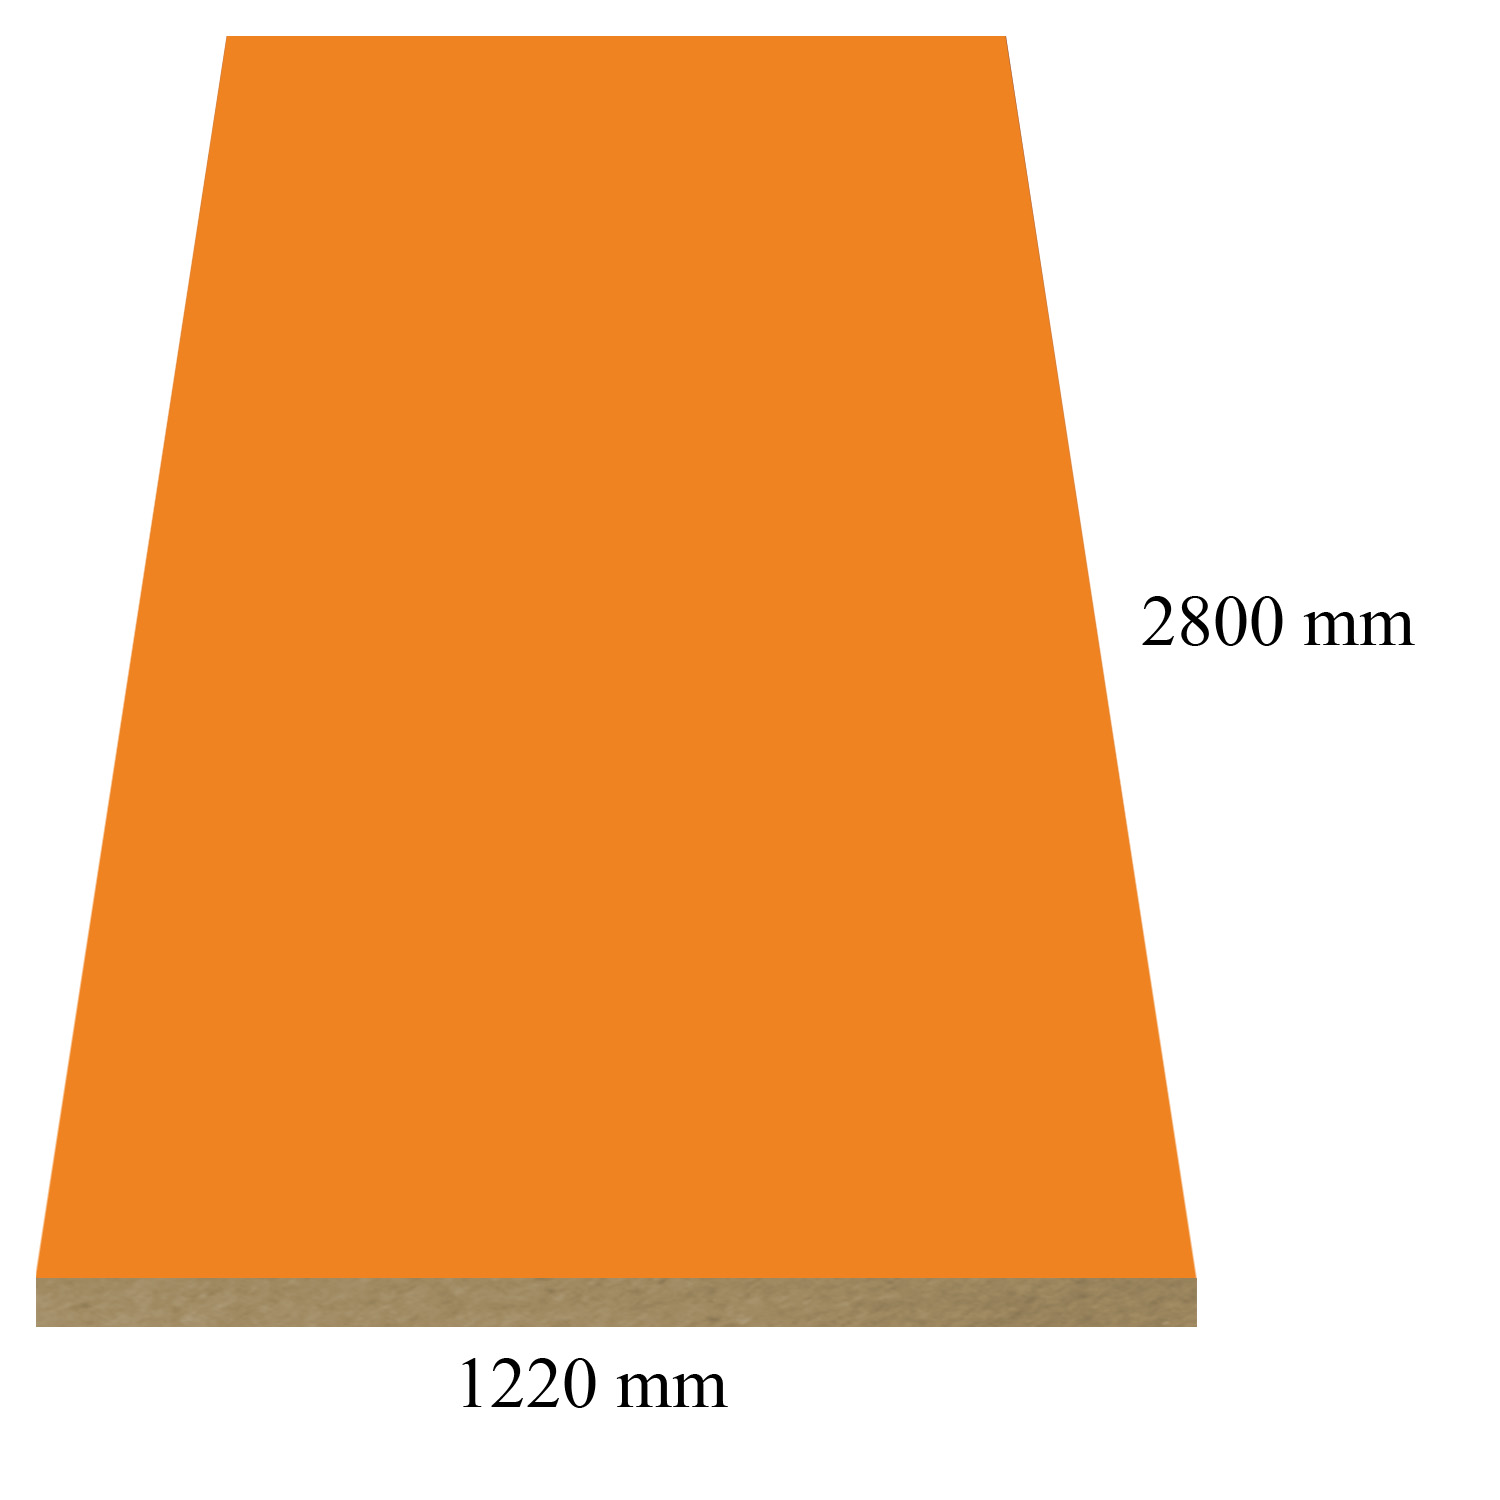 164 Pastel Orange high gloss - PVC coated 18 mm MDF